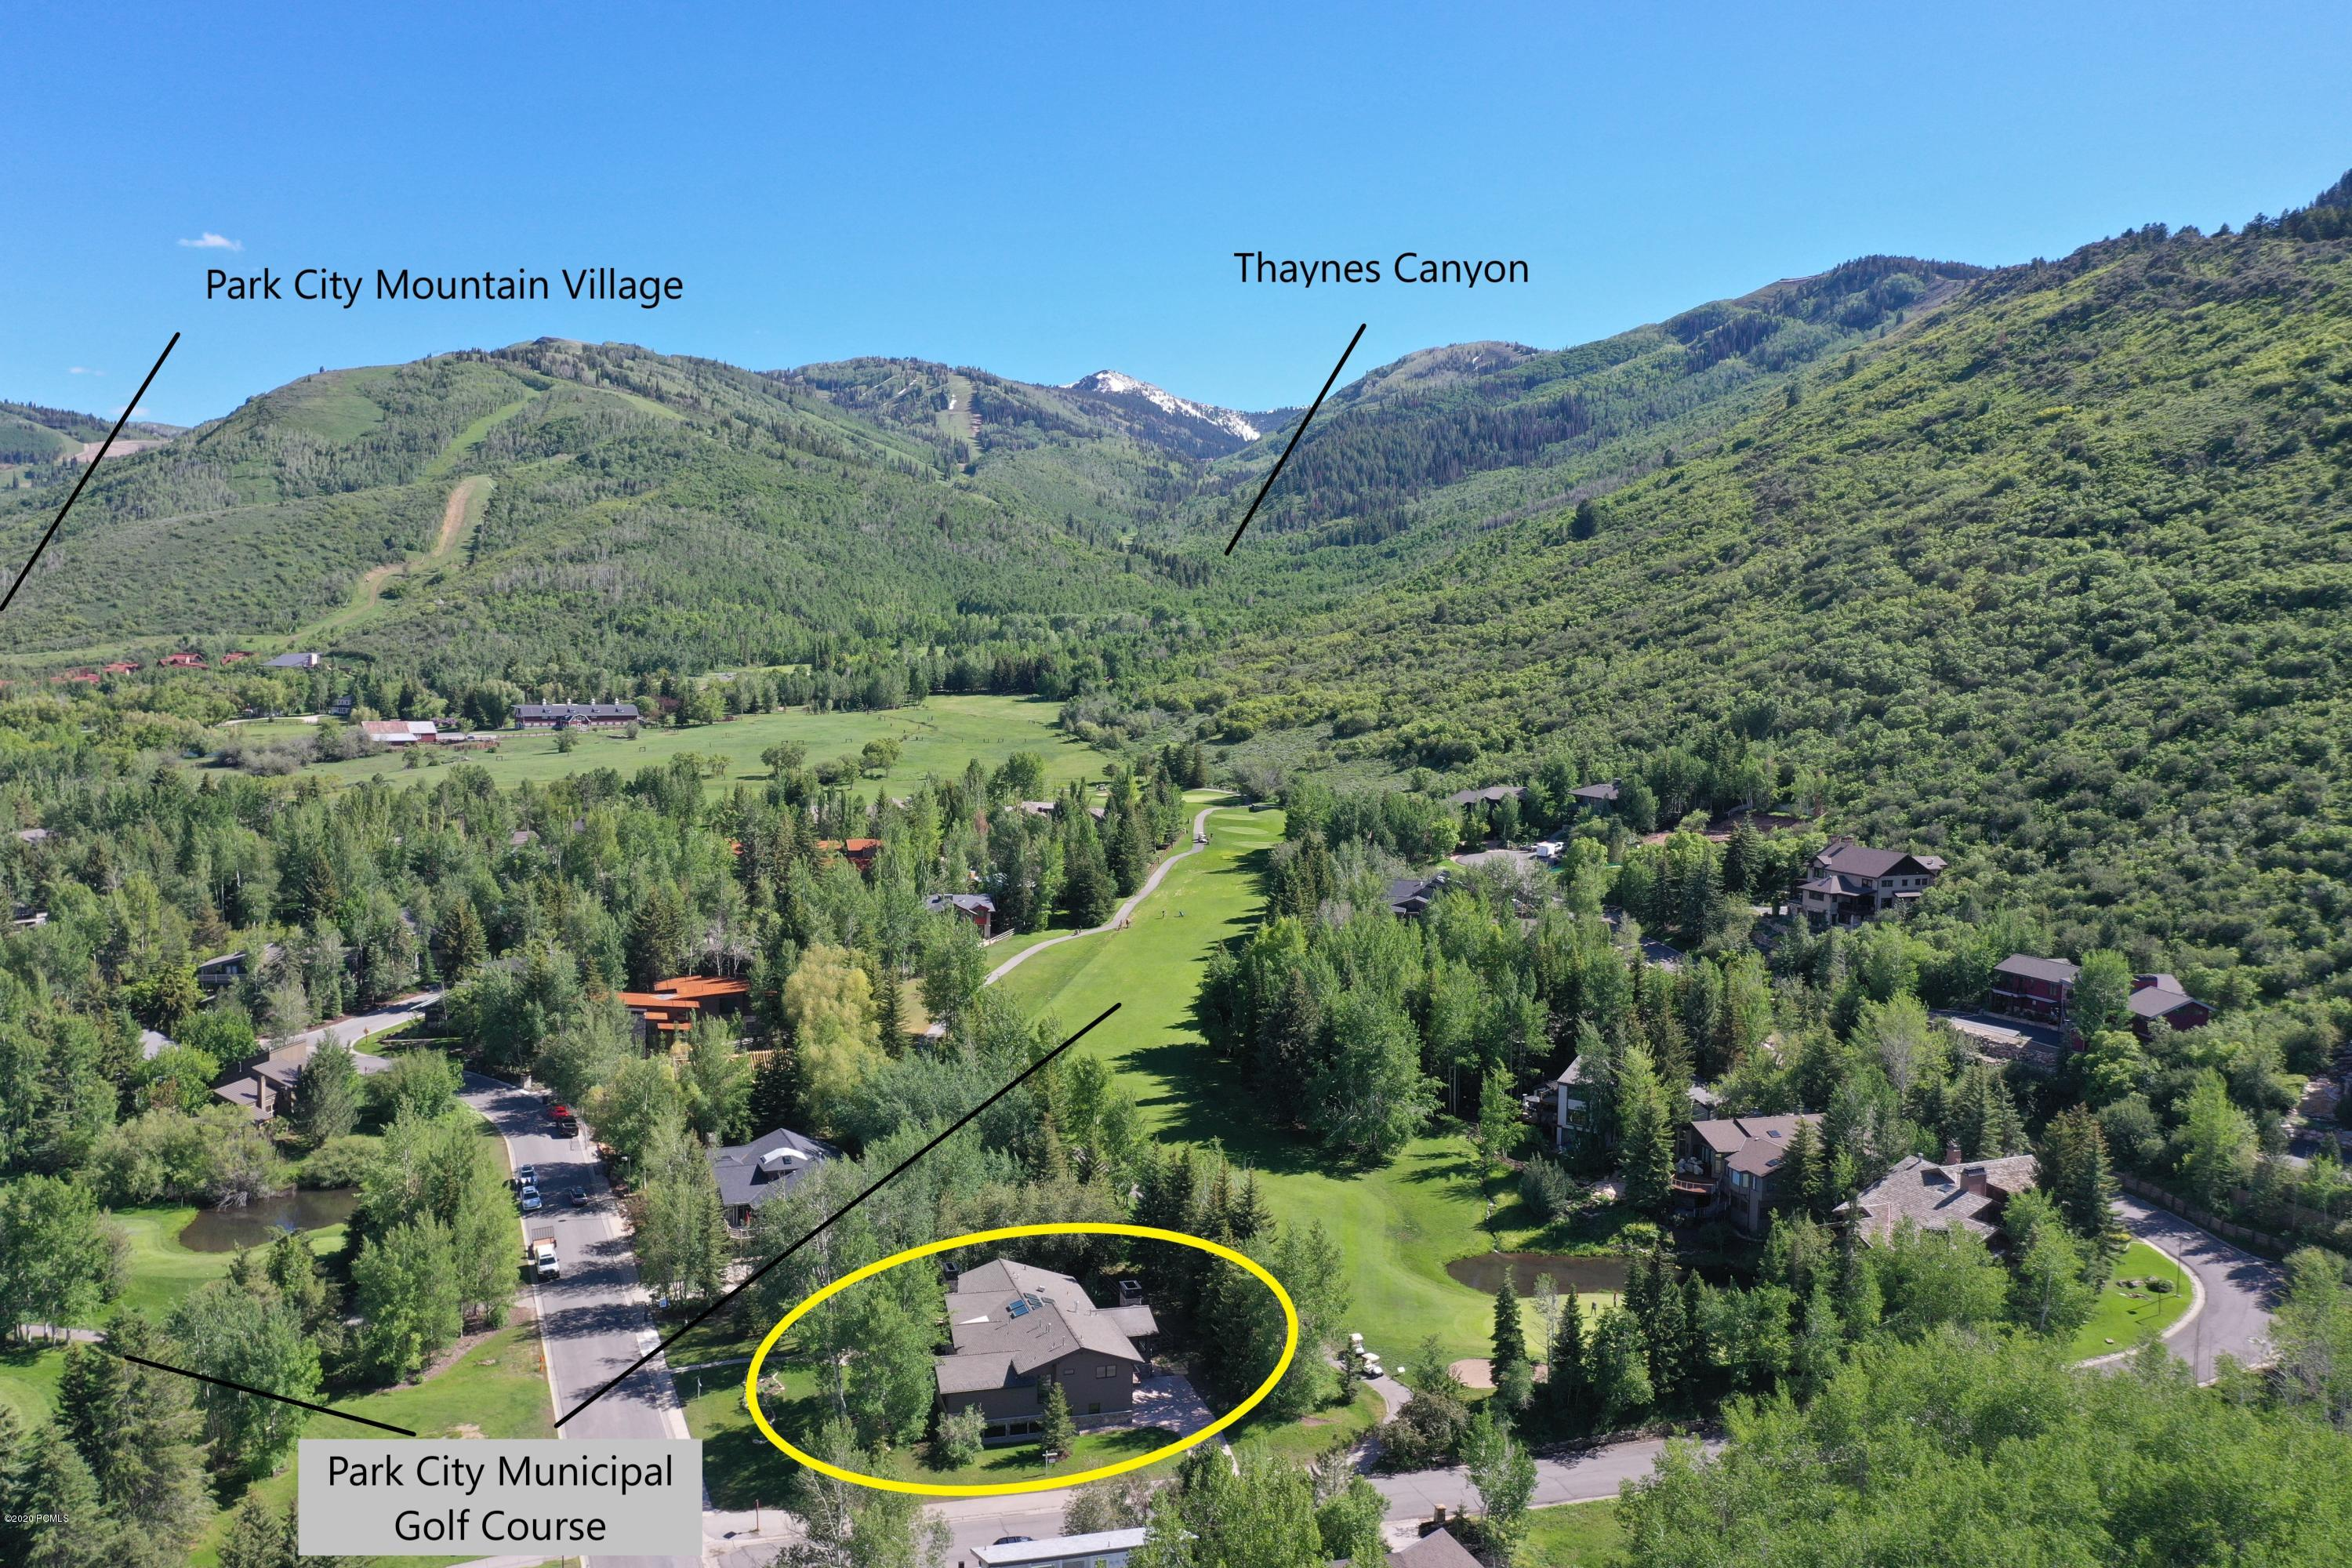 79 Thaynes Canyon Drive, Park City, Utah 84060, 5 Bedrooms Bedrooms, ,7 BathroomsBathrooms,Single Family,For Sale,Thaynes Canyon,20190109112430415765000000